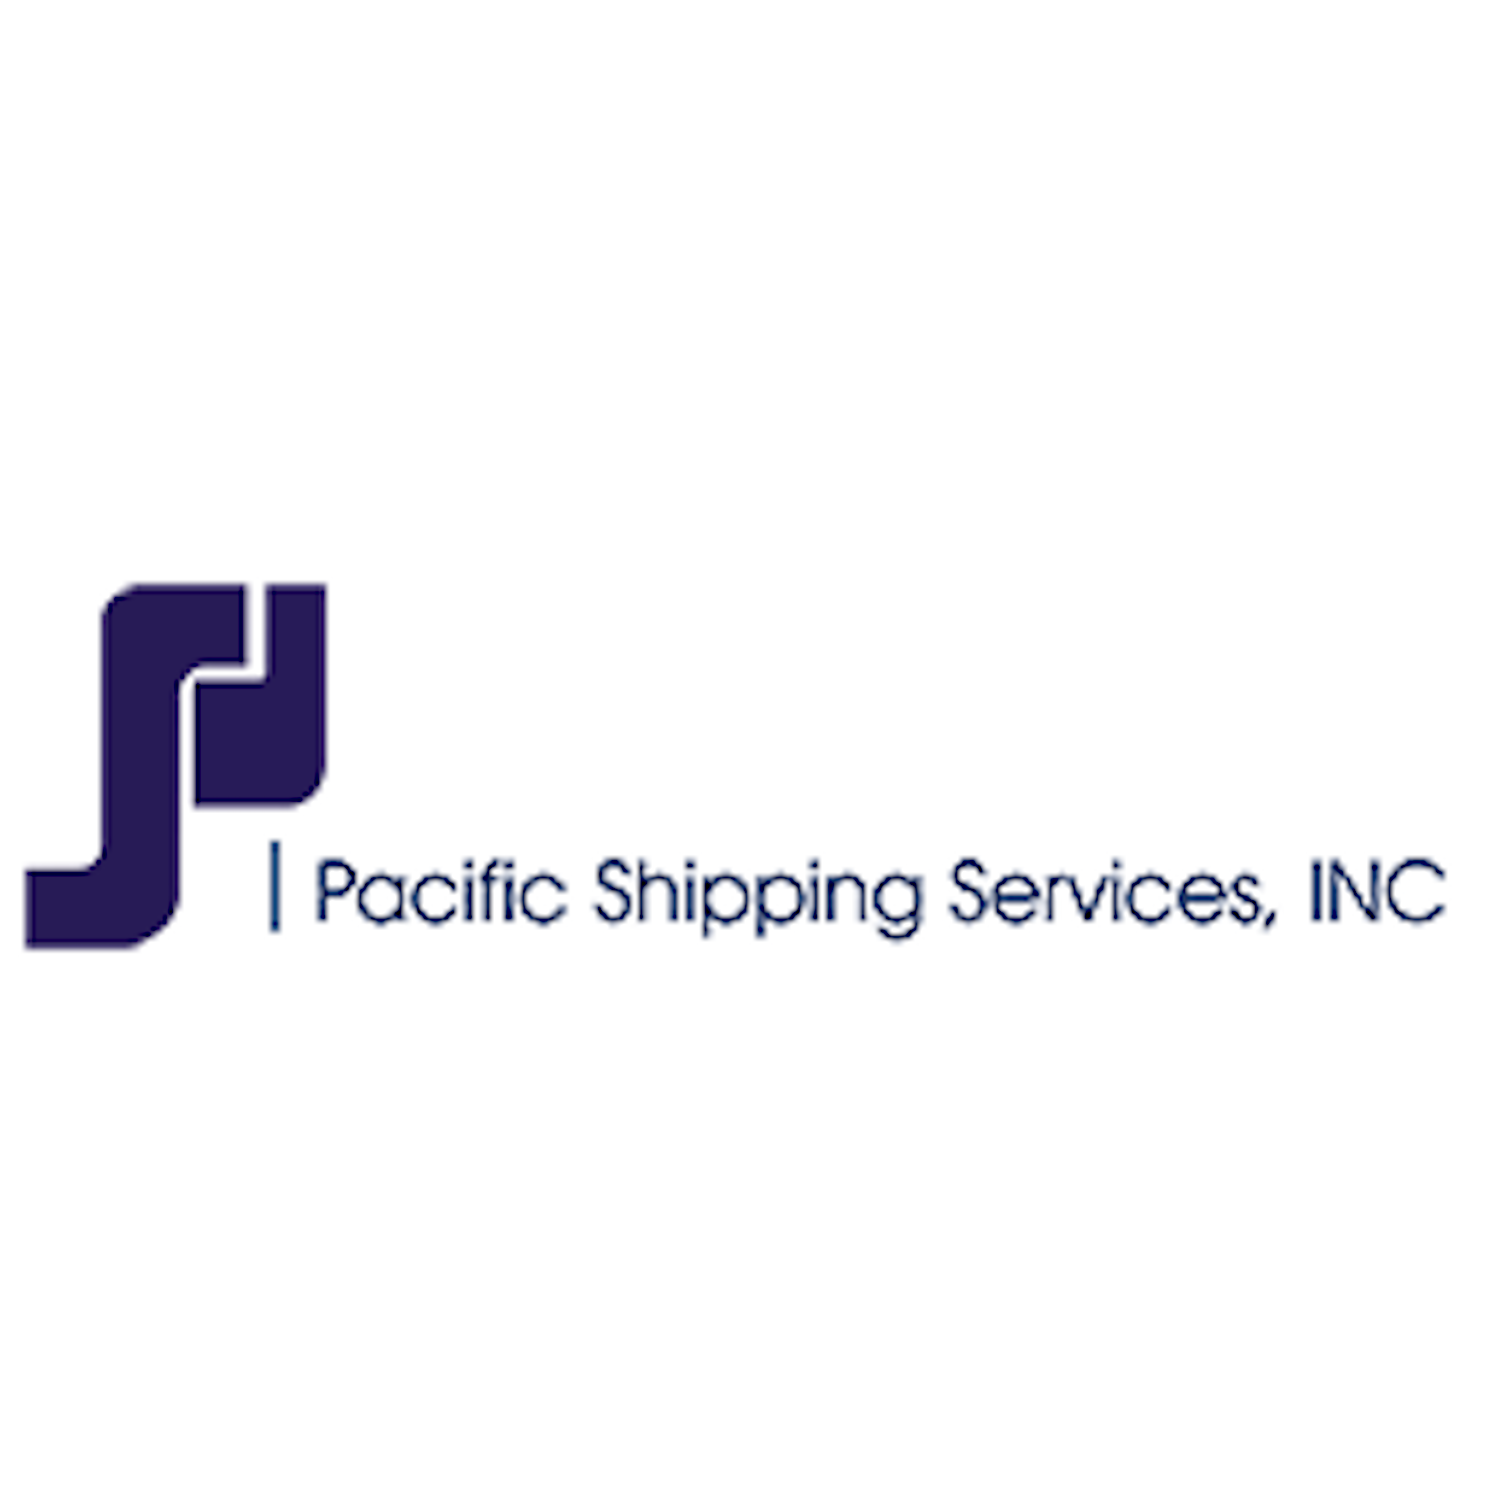 Pacific Shipping Services, Inc.